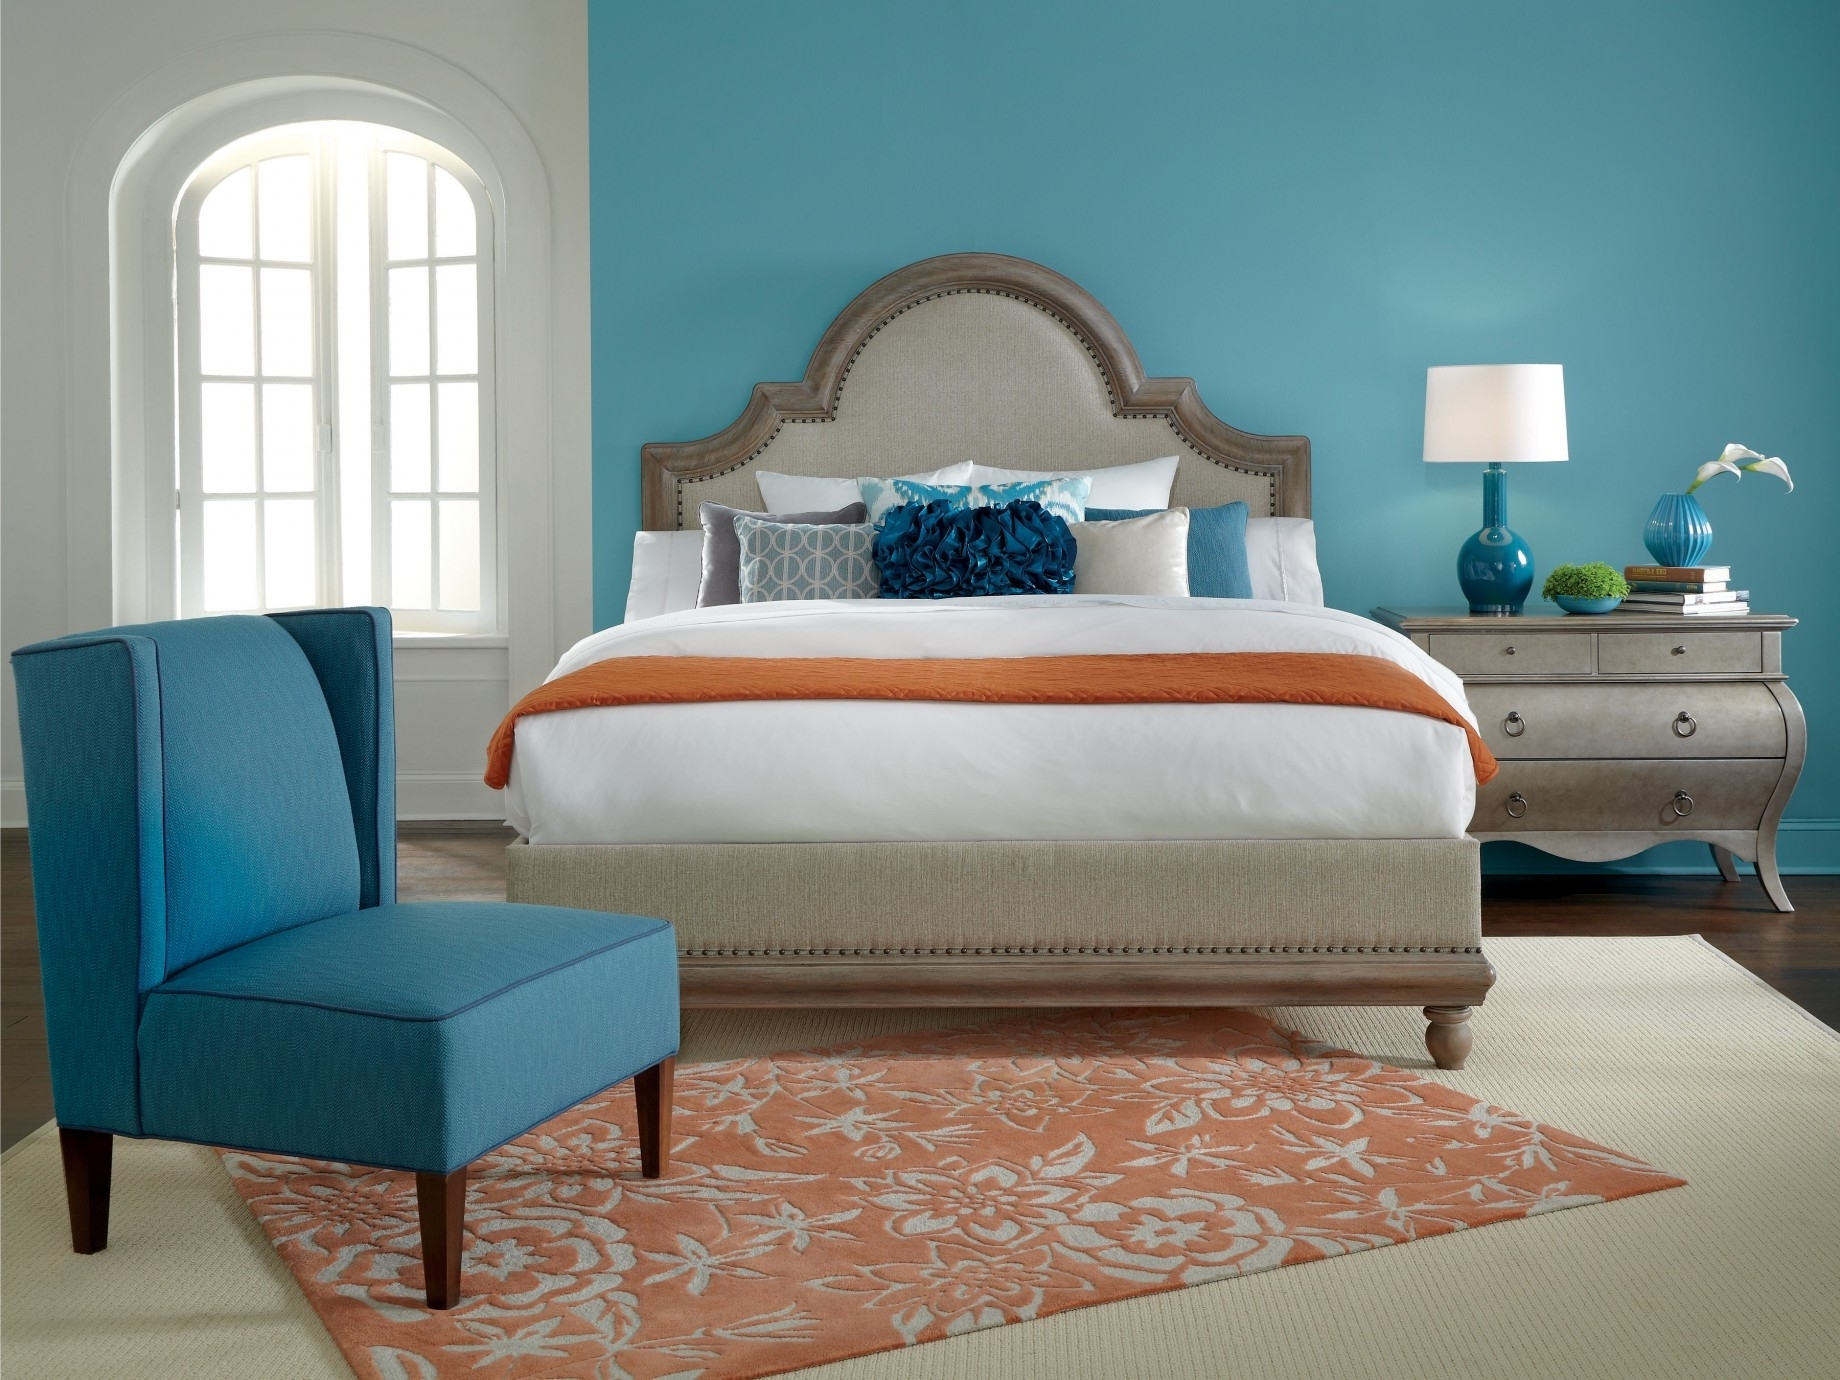 Bedroom Design: Feature Wall Paint Painting Accent Walls Accent For Best And Newest Wall Accents Color Combinations (View 2 of 15)